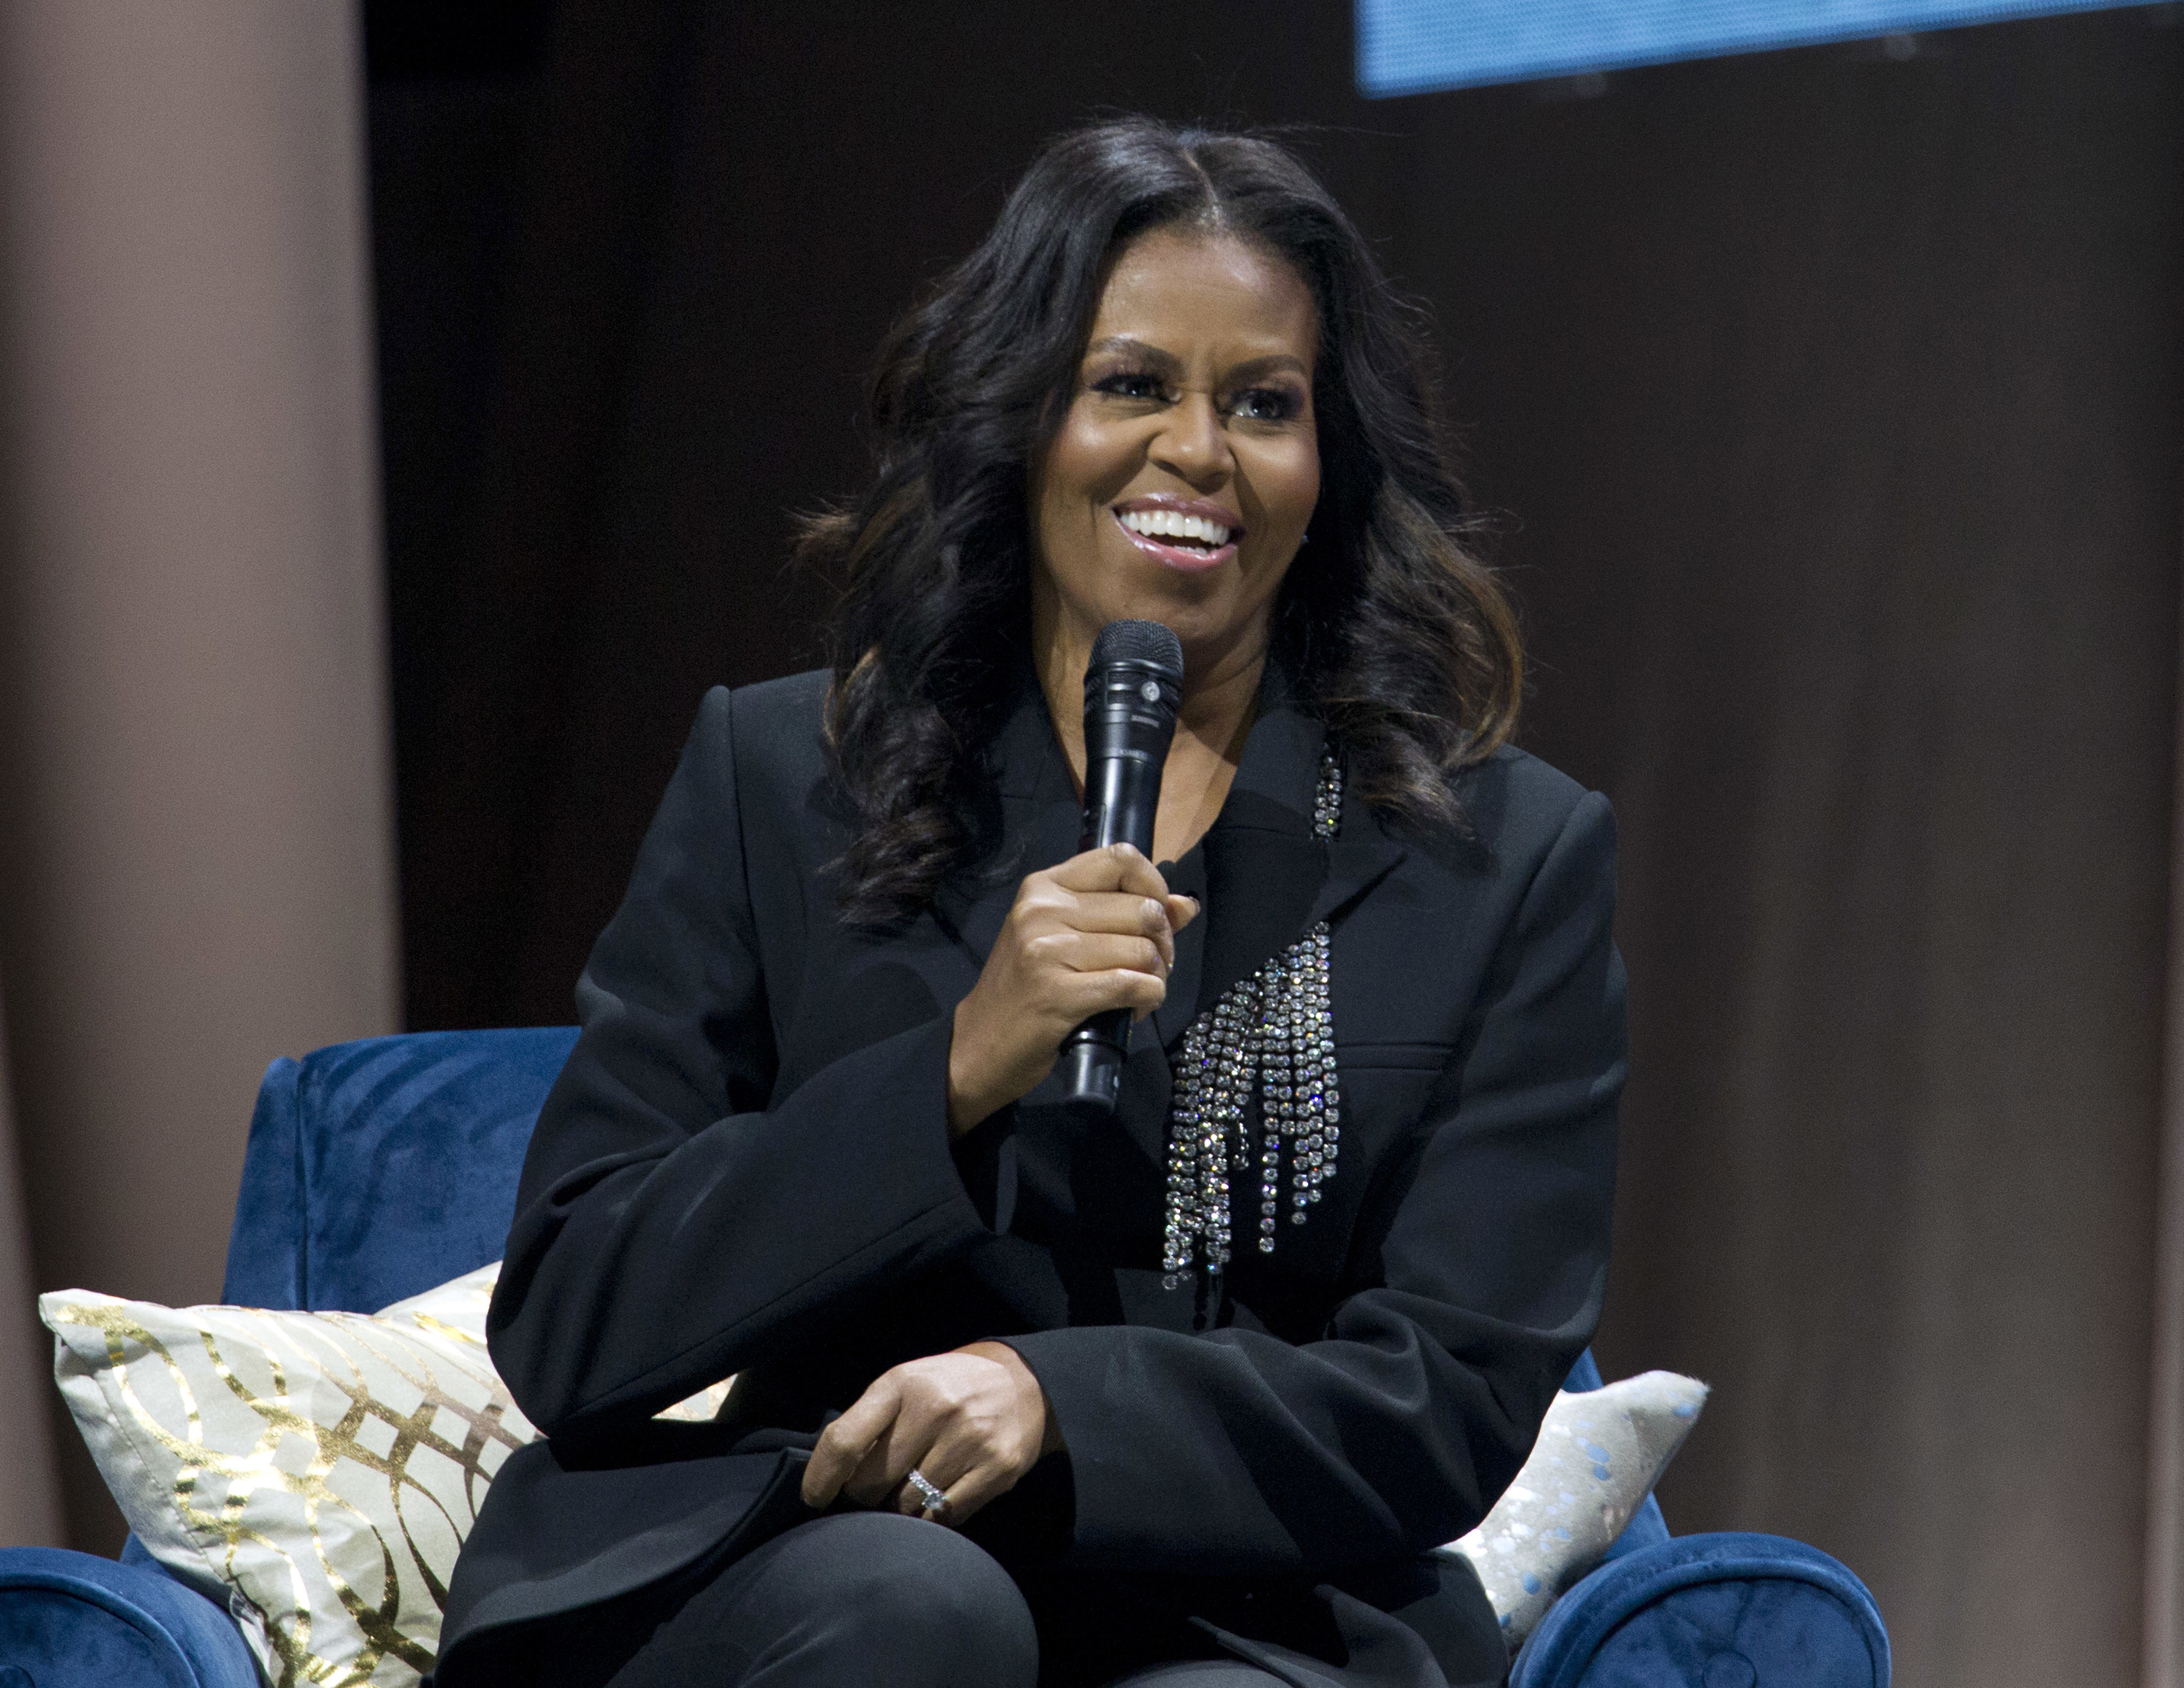 Michelle Obama speaks to the crowd as she presents her anticipated memoir Becoming during her book tour stop in Washington on Saturday.